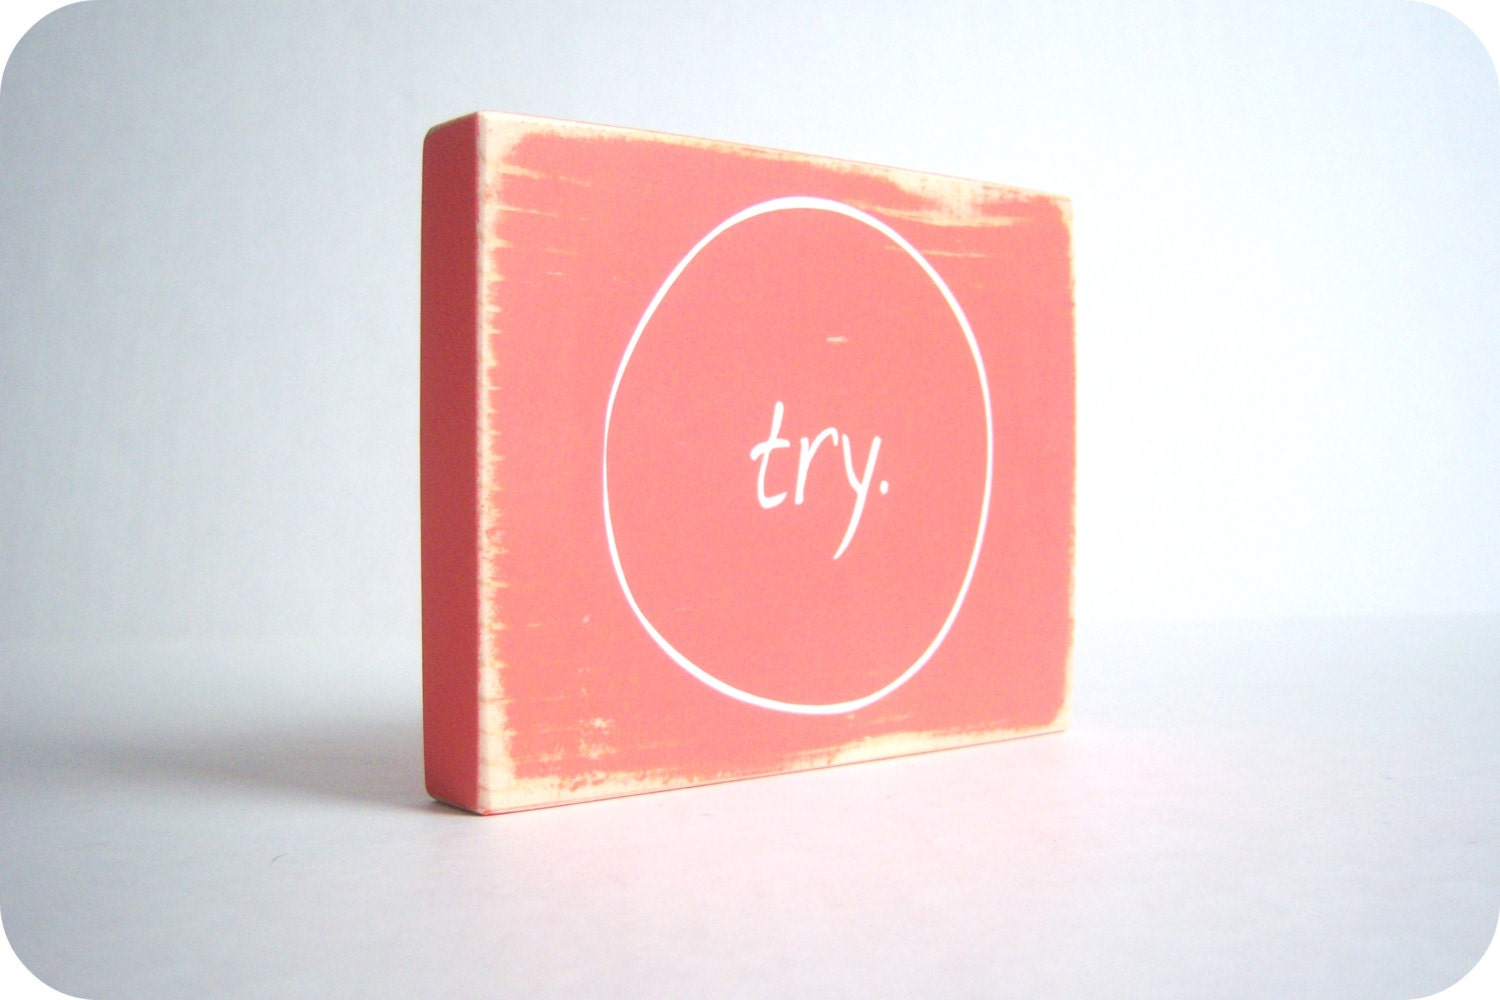 Try. Wood Block Home Decor and Gift. - bubblewrappd